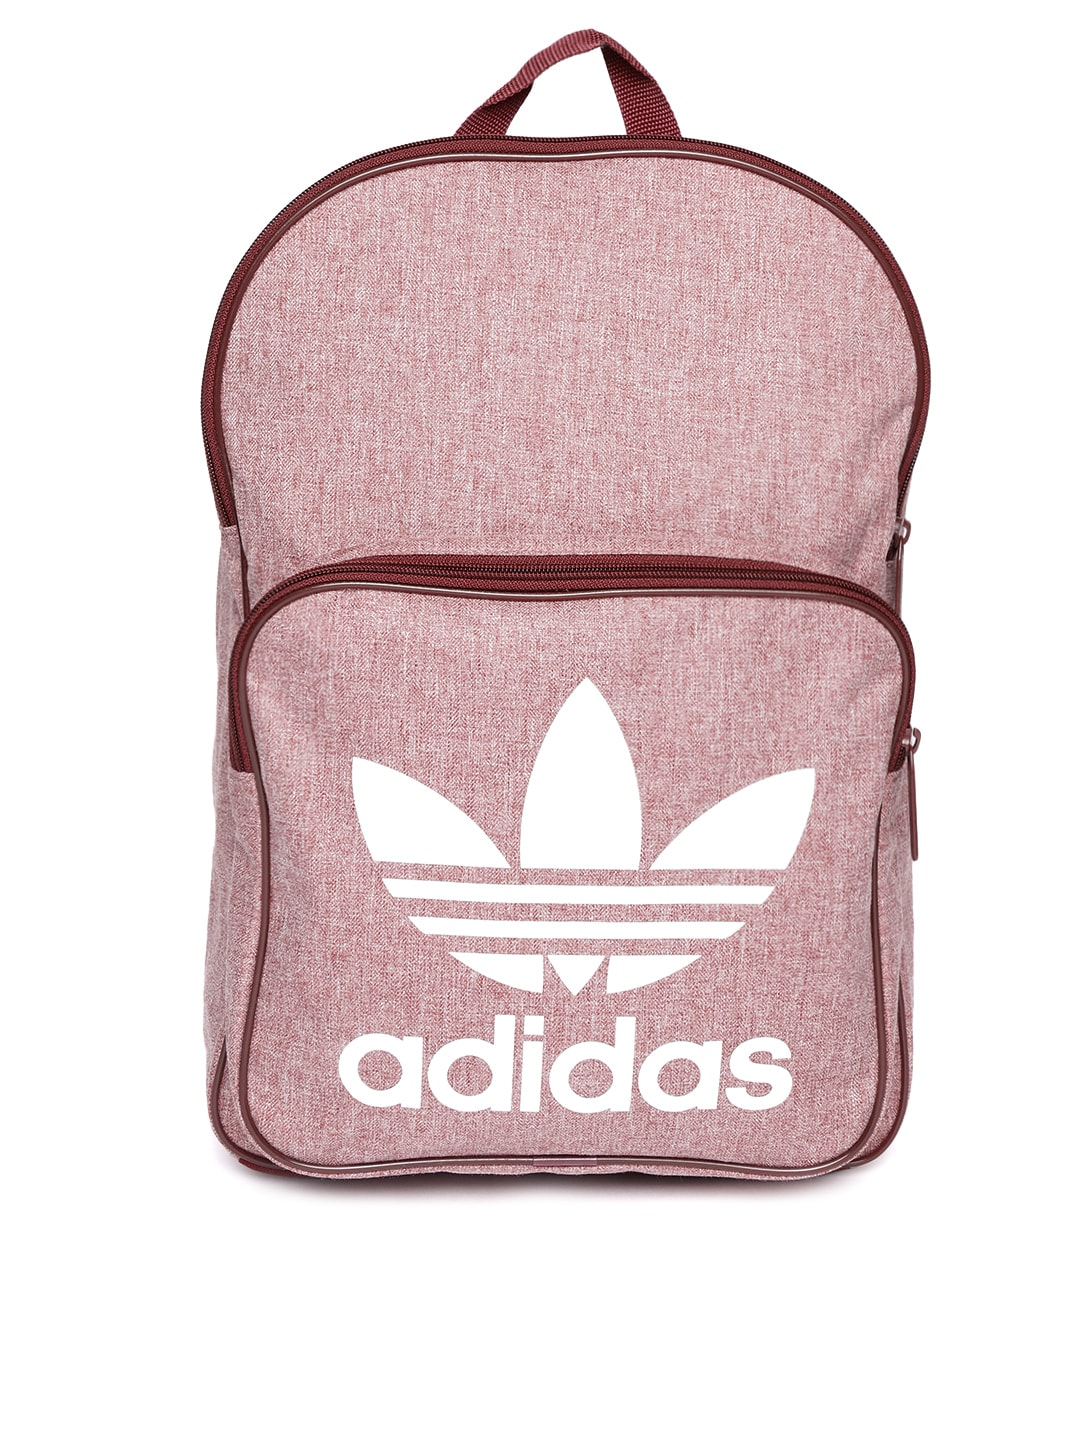 e0dcb122321 Adidas Real Madrid Backpacks Polo Tshirts - Buy Adidas Real Madrid Backpacks  Polo Tshirts online in India